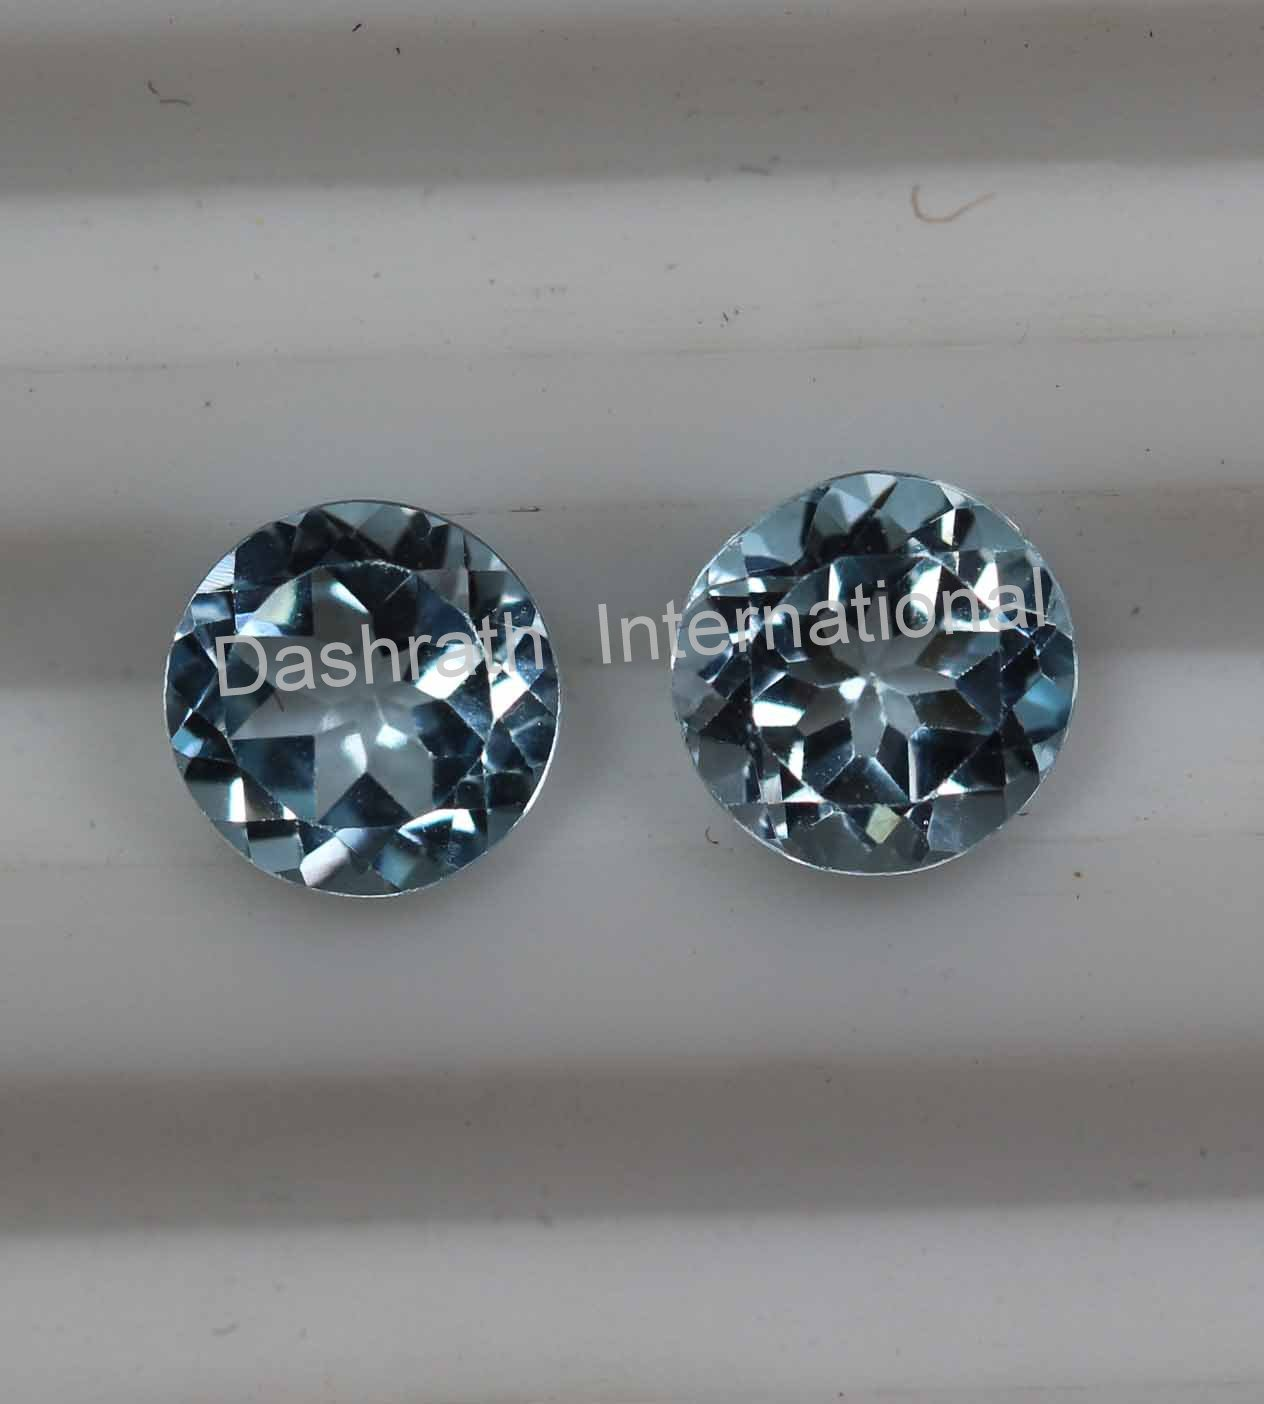 8mmNatural Sky Blue Topaz Faceted Cut Round 50 Pieces Lot Blue Color  Top Quality Loose Gemstone